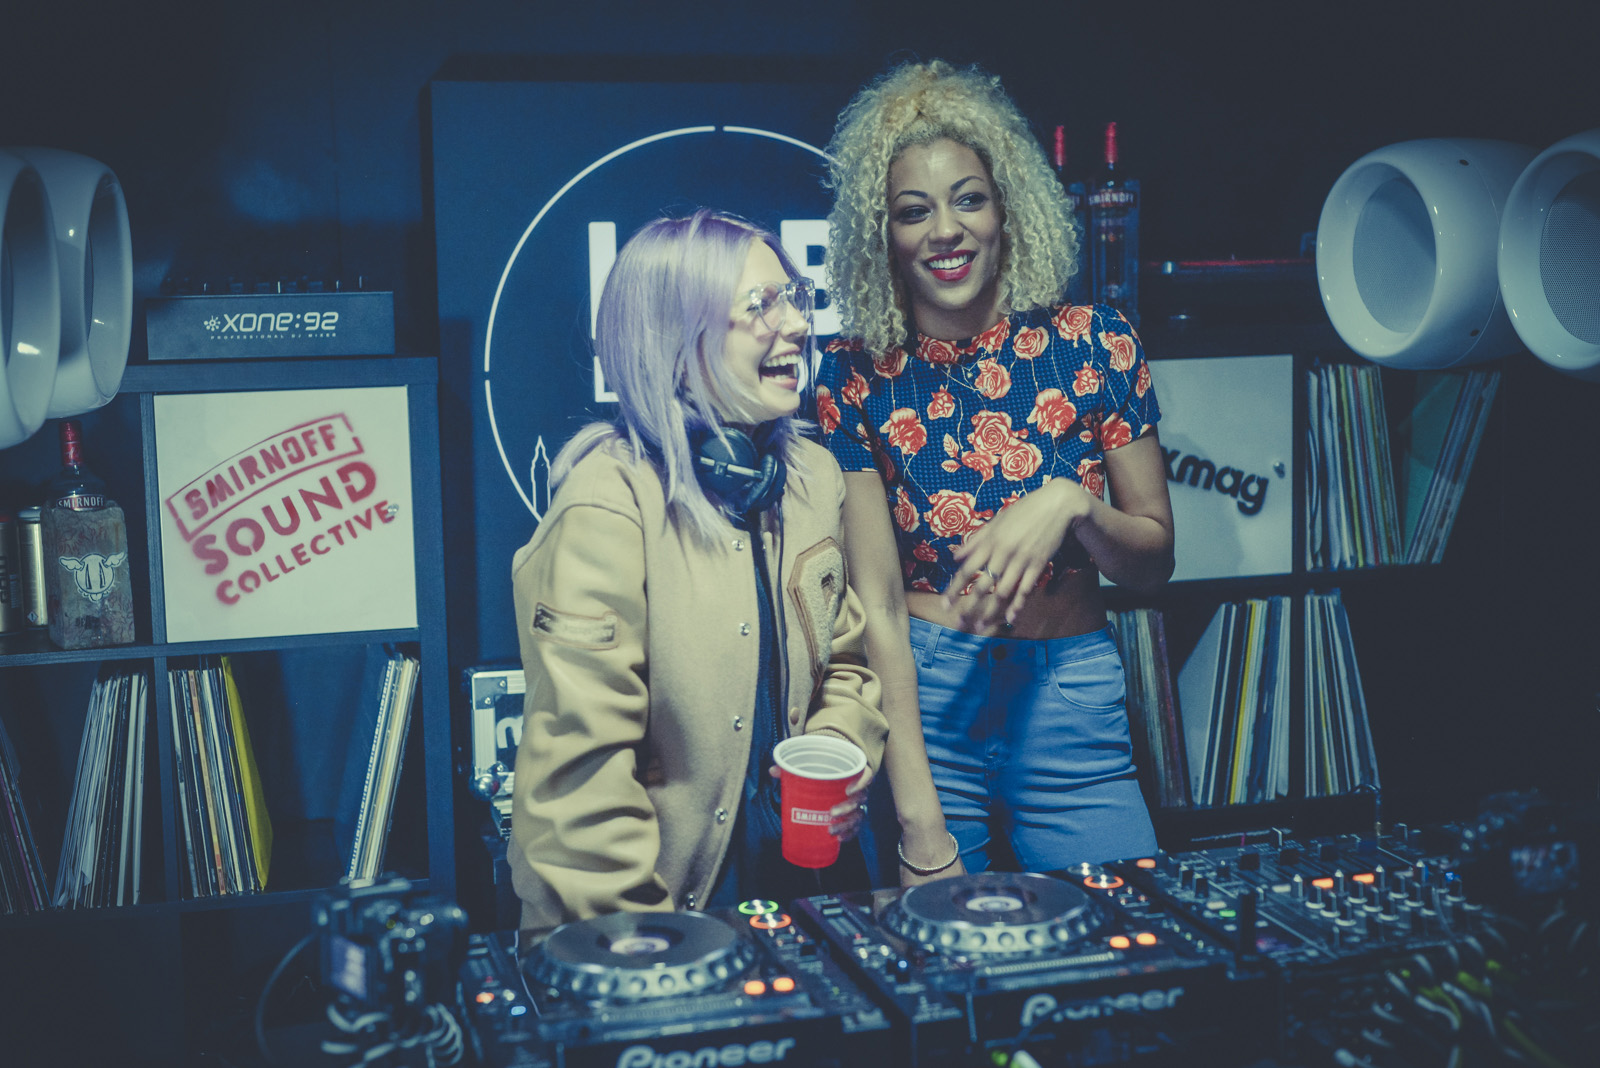 Traits plays for a crowd at the Mixmag X Smirnoff Sound Collective Lab in Sydney, Australia in support of International Women's Day alongside Mixmag presenter Sarah Lamptey